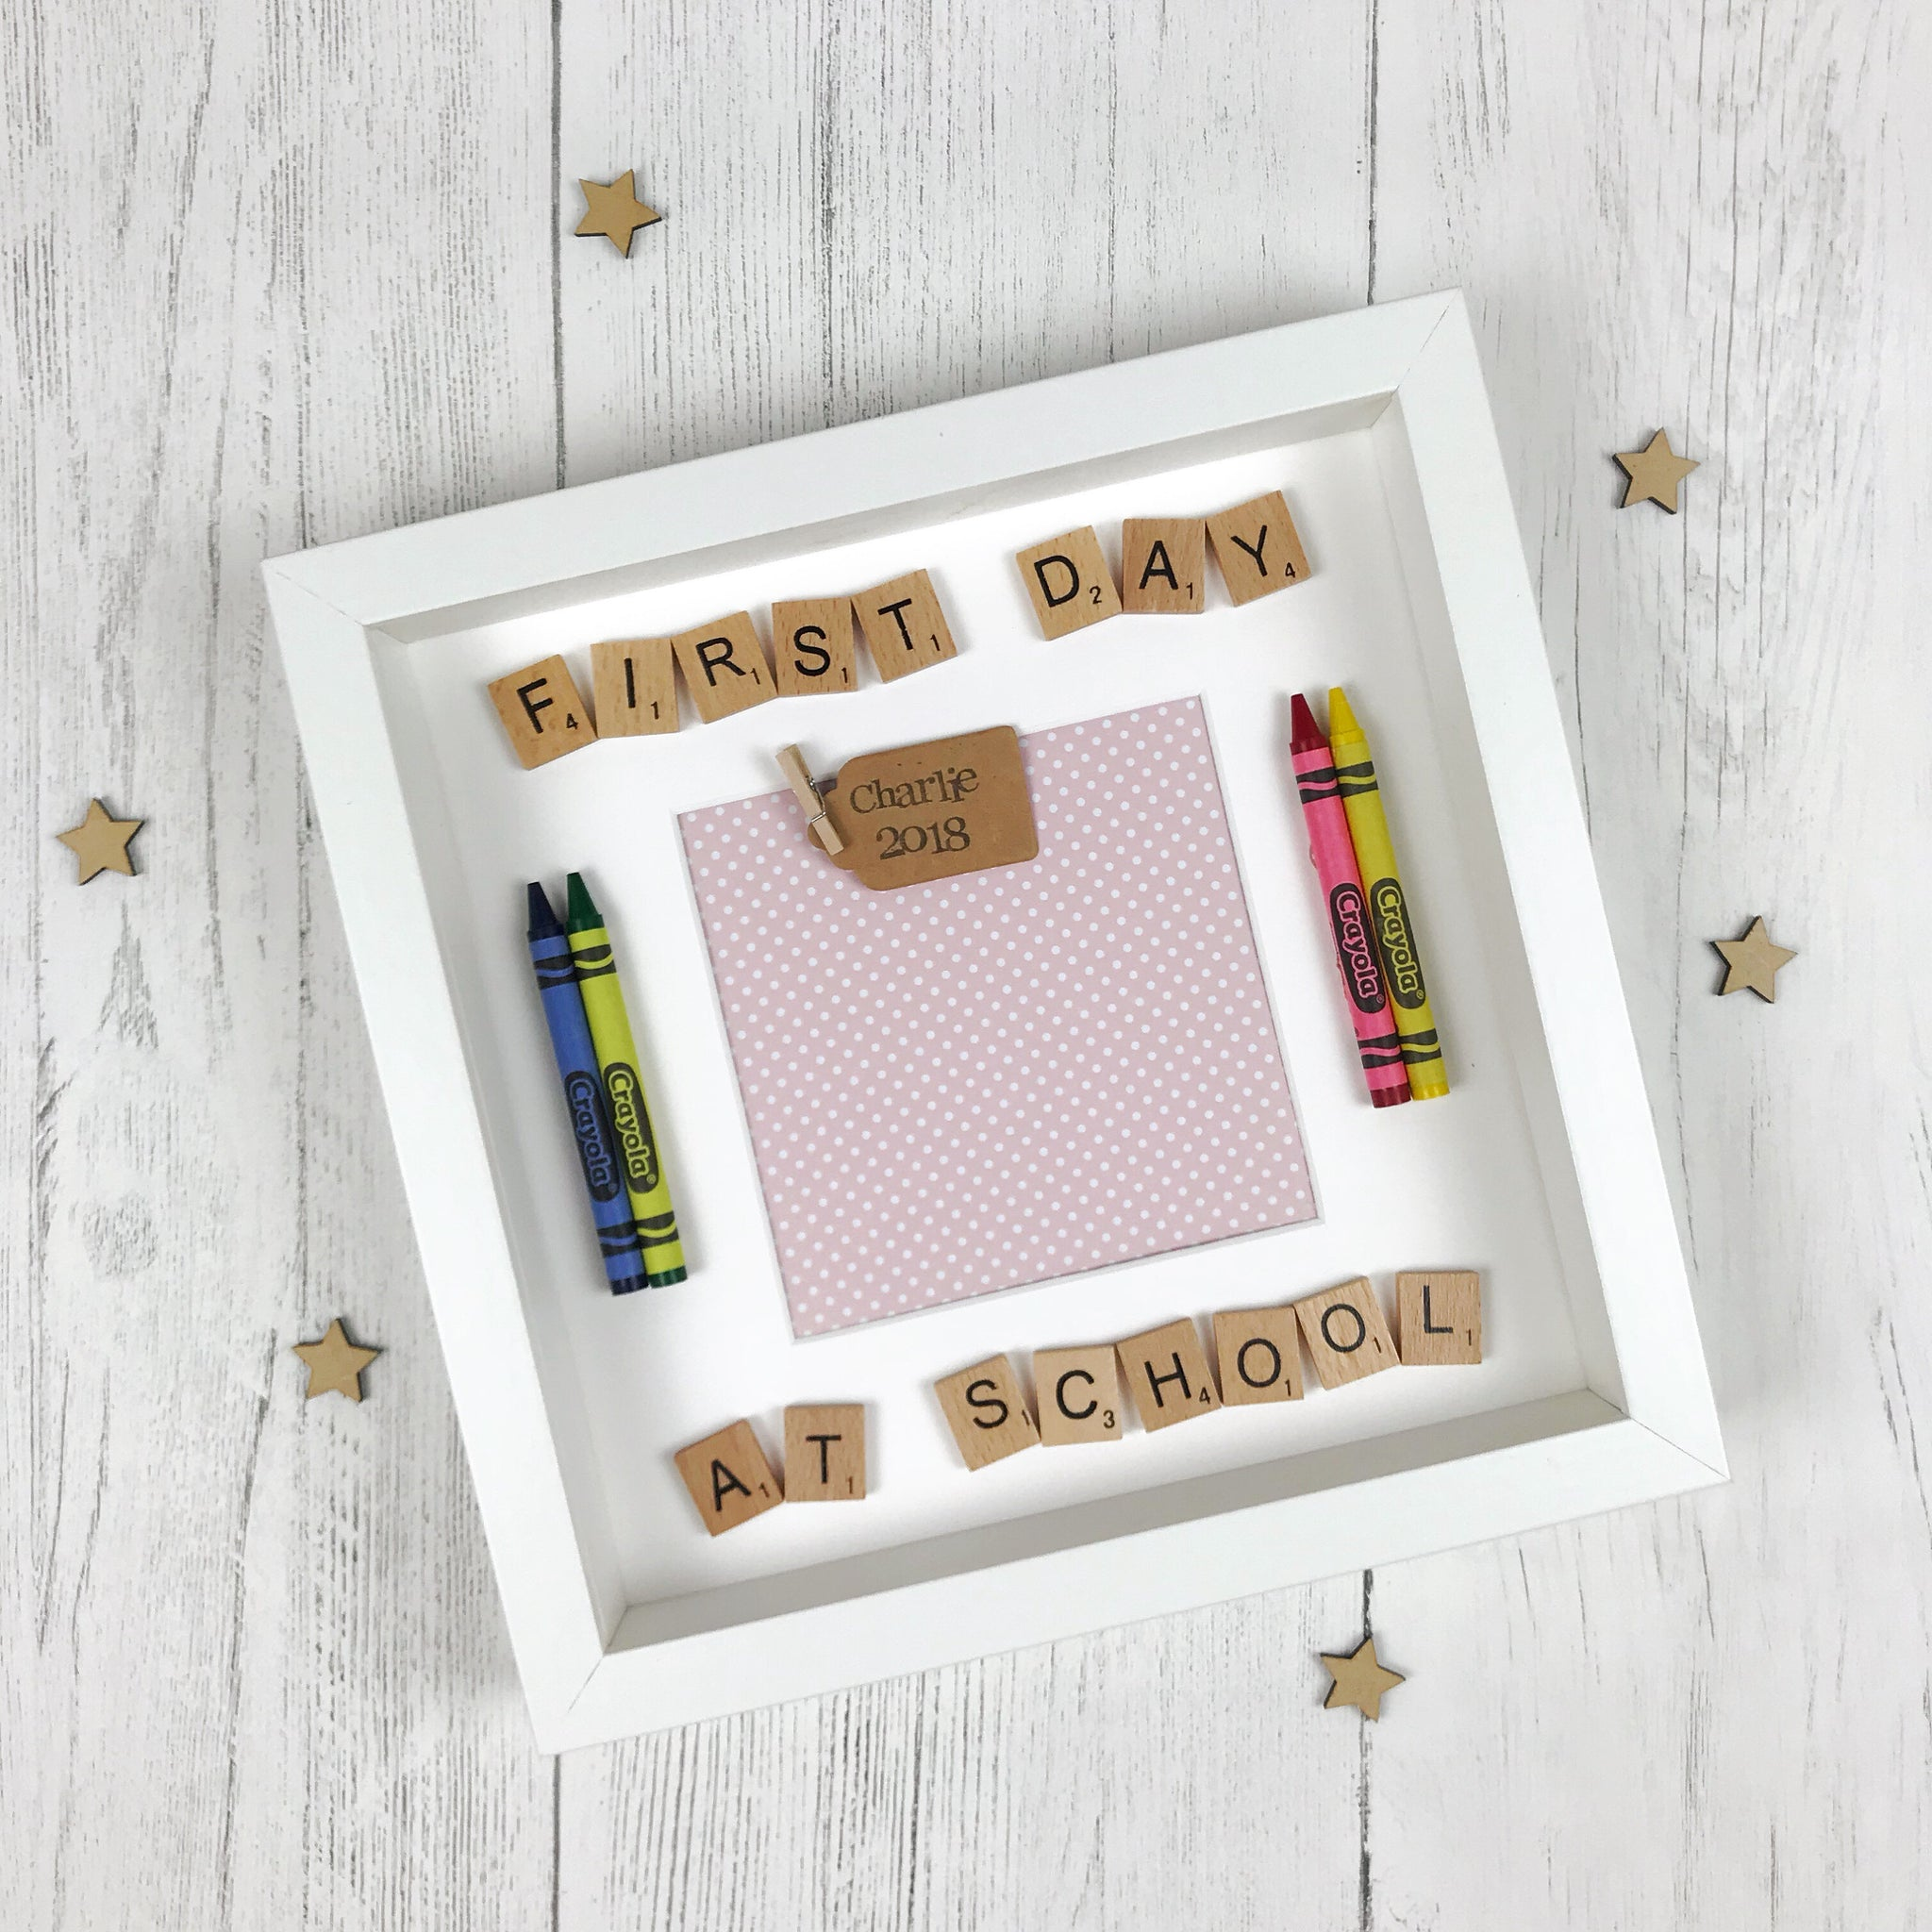 first day at school photo frame pink